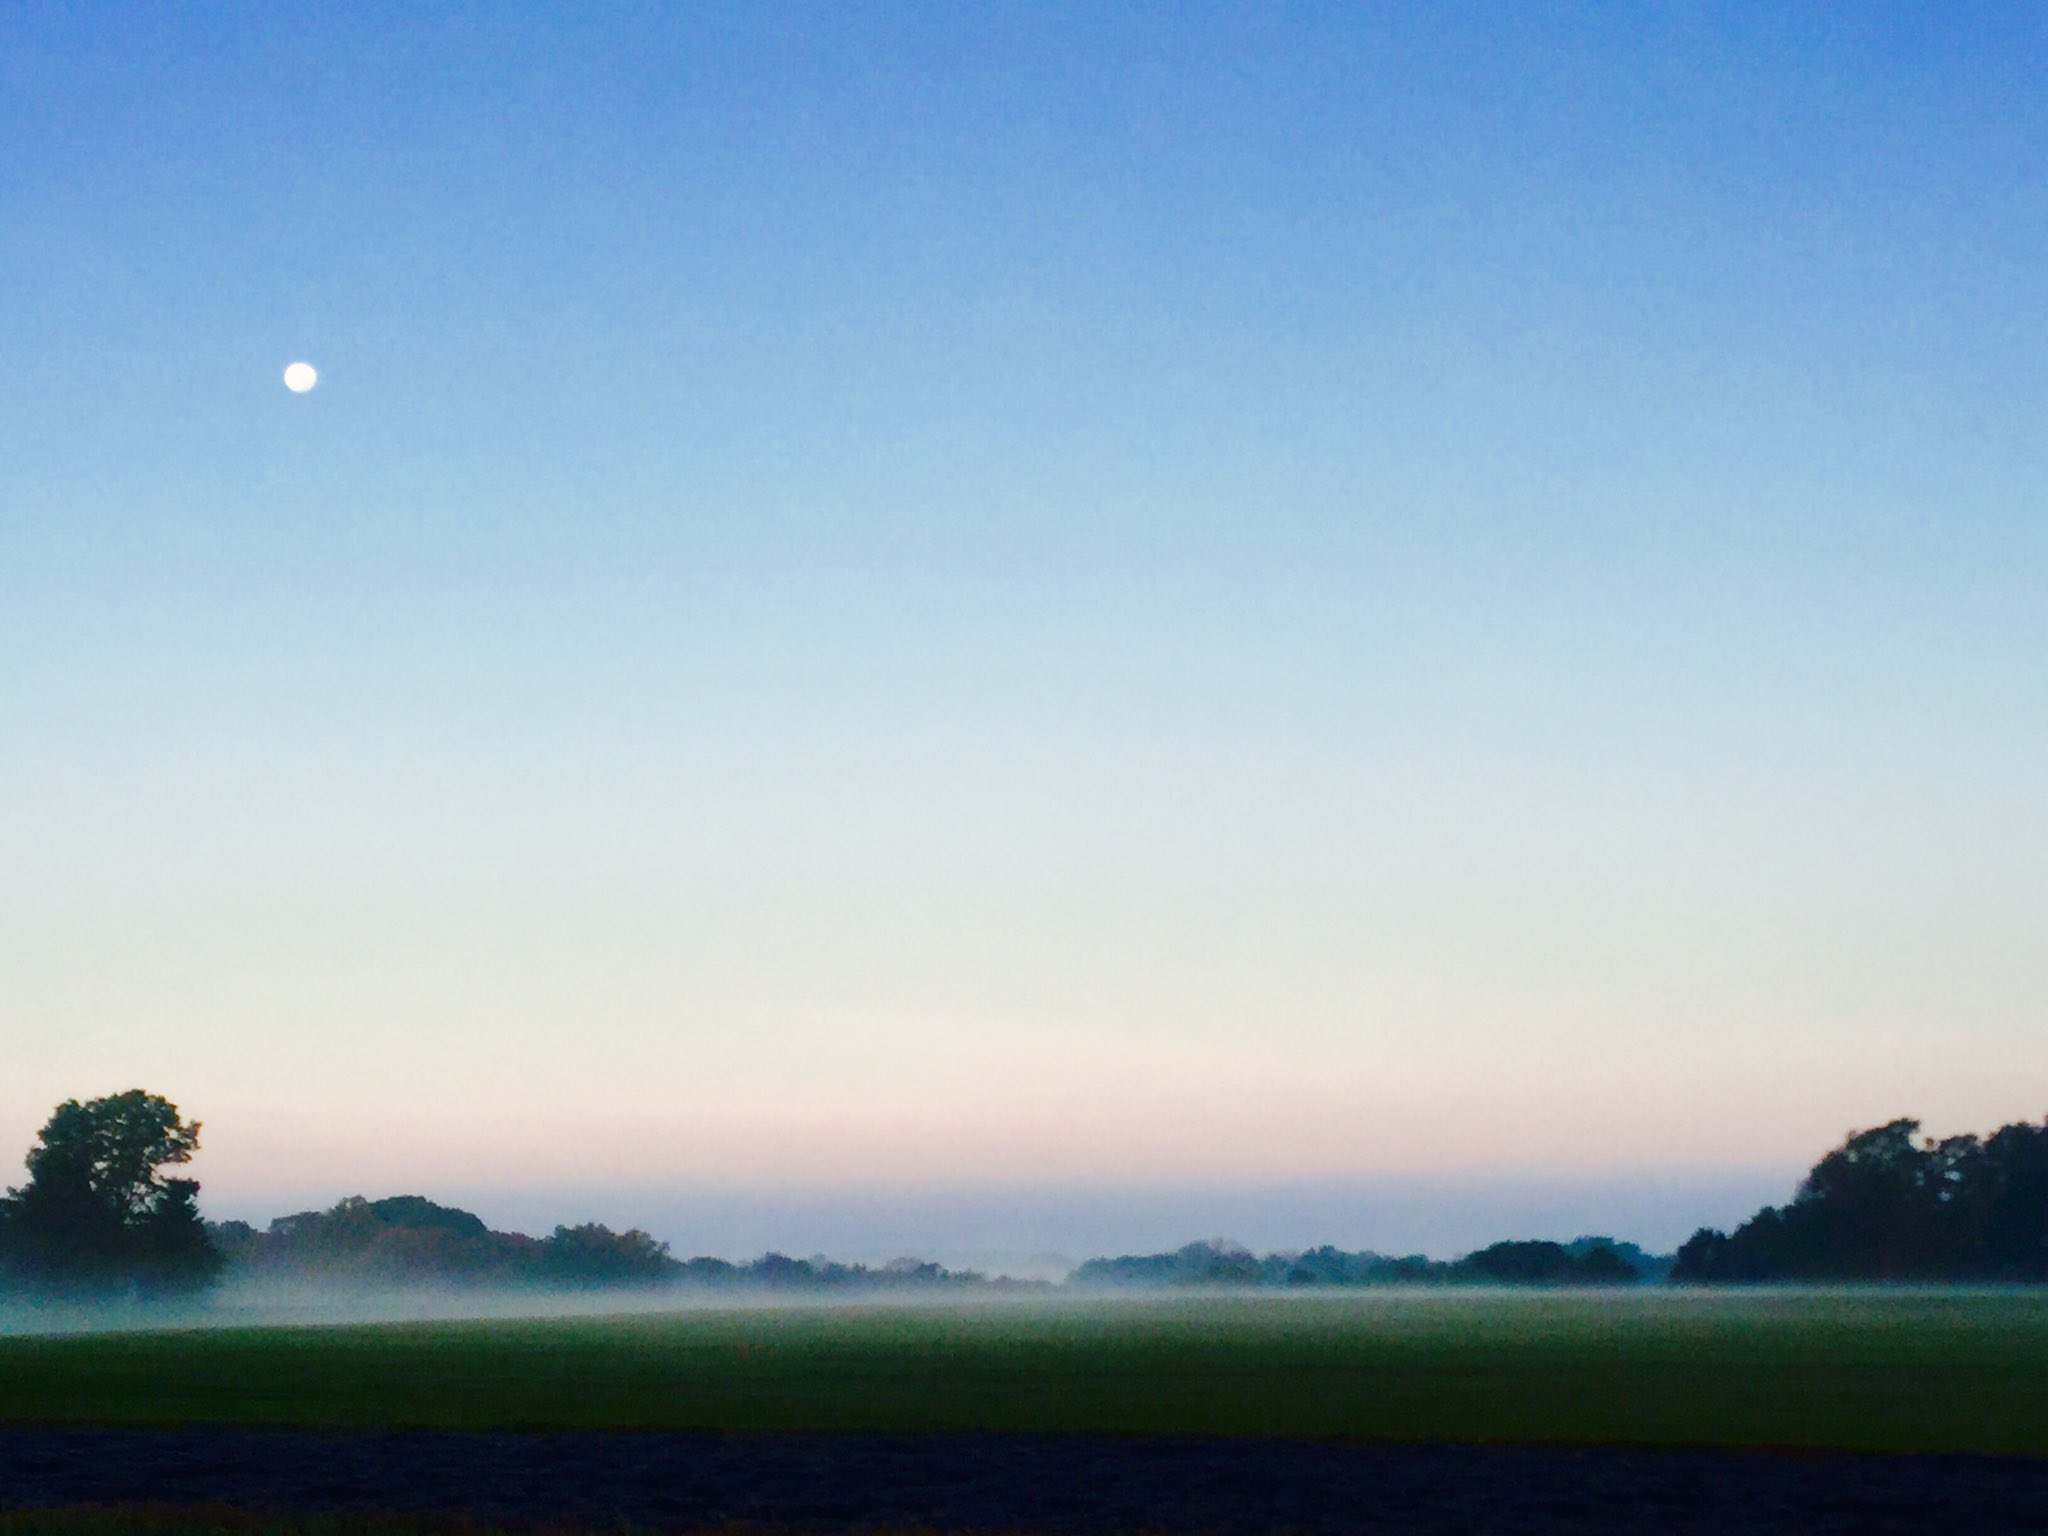 """Off with the """"Hosses"""" of Chesapeake Bay......it's stunning here.....moon and mist xx https://t.co/1mNtACESTE"""